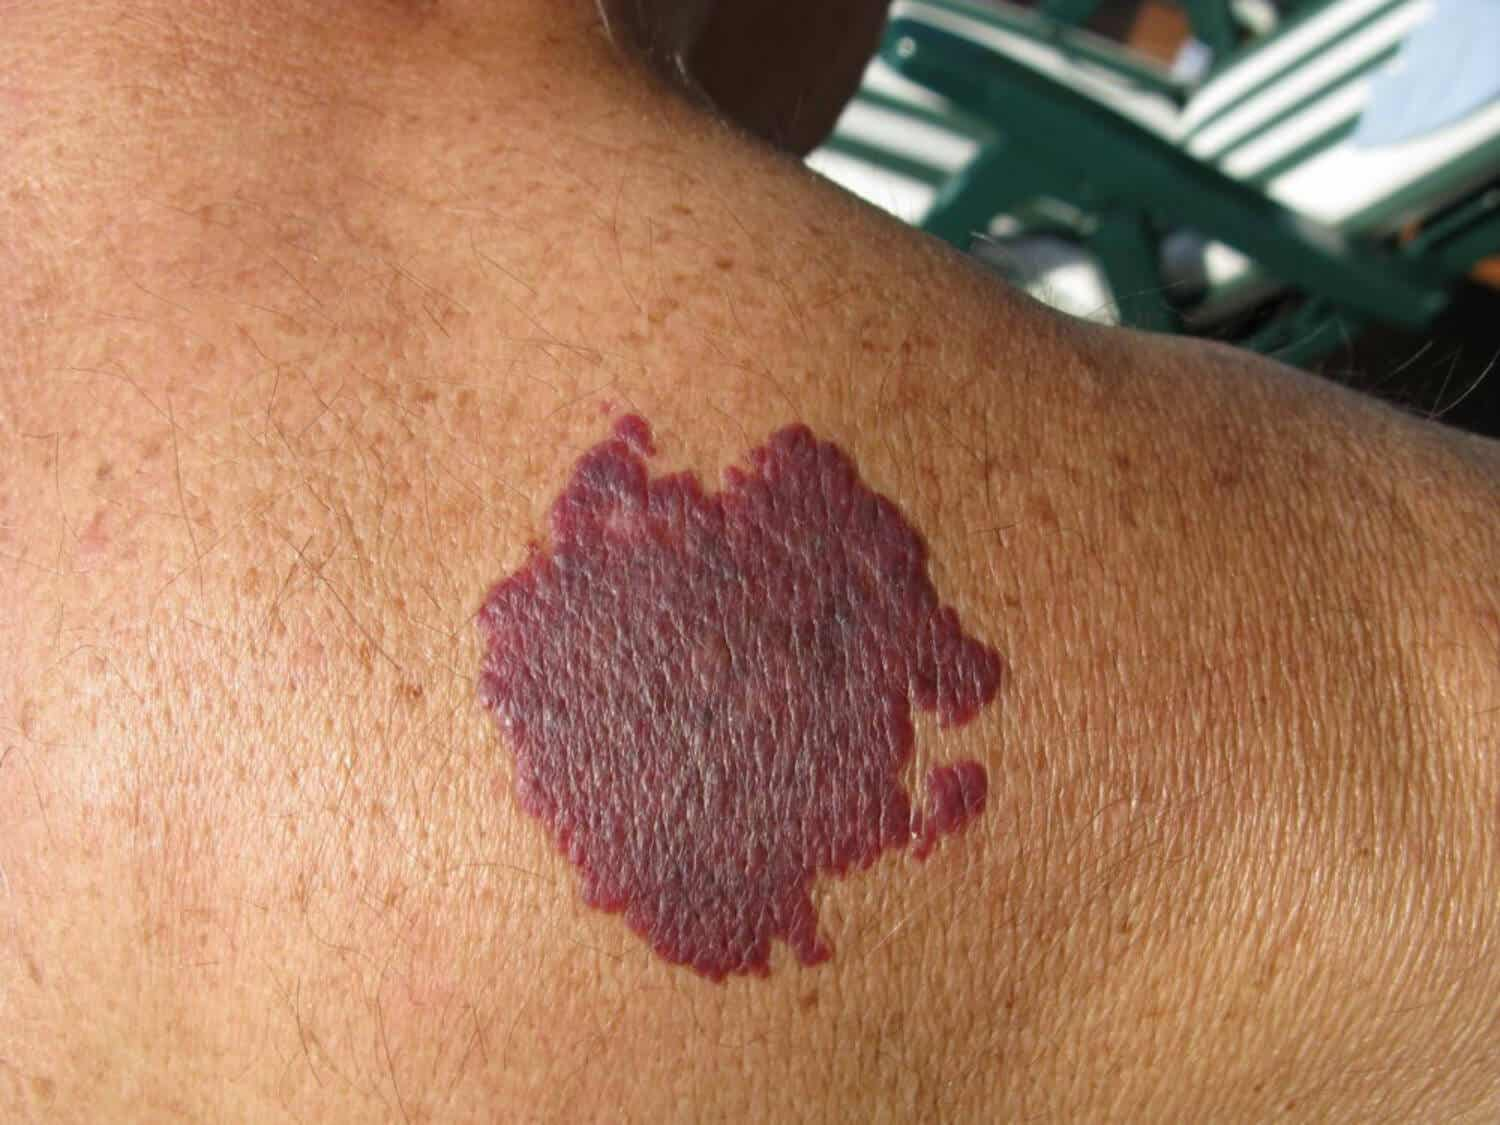 A large purple spot on a person's back.